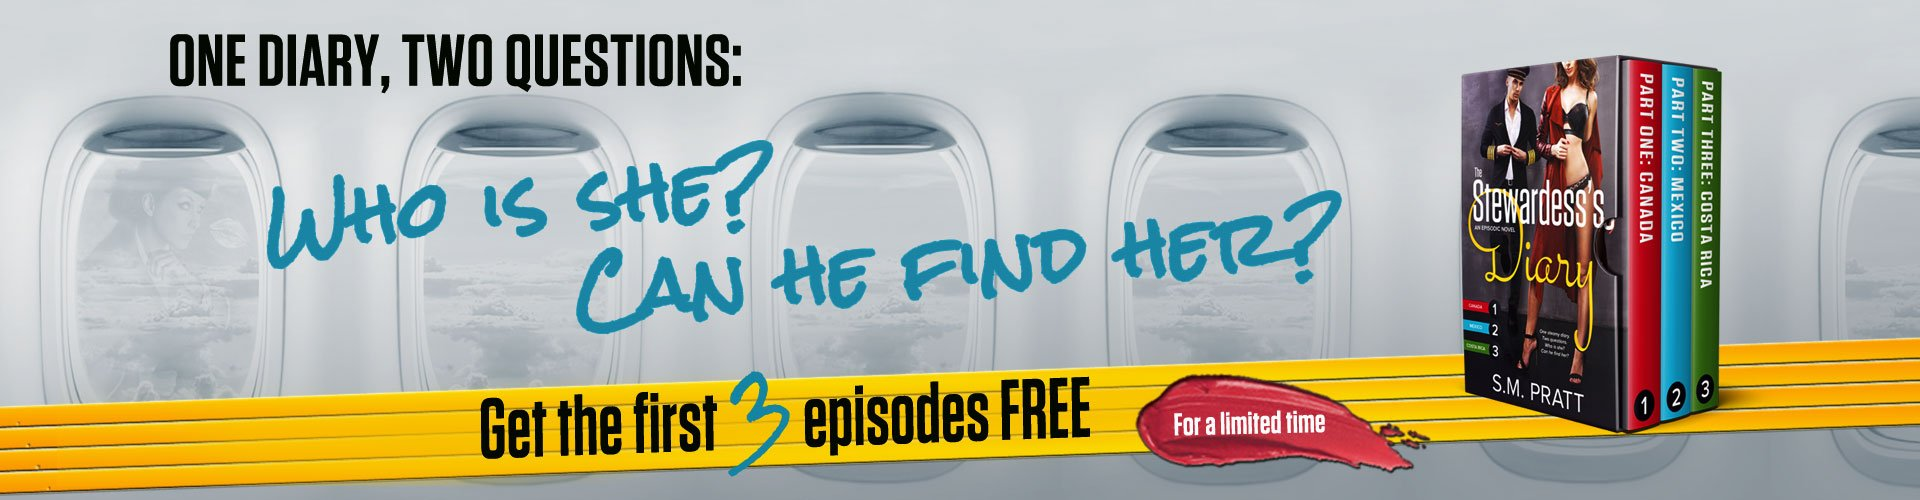 One Diary, Two Questions. Get the first 3 episodes FREE